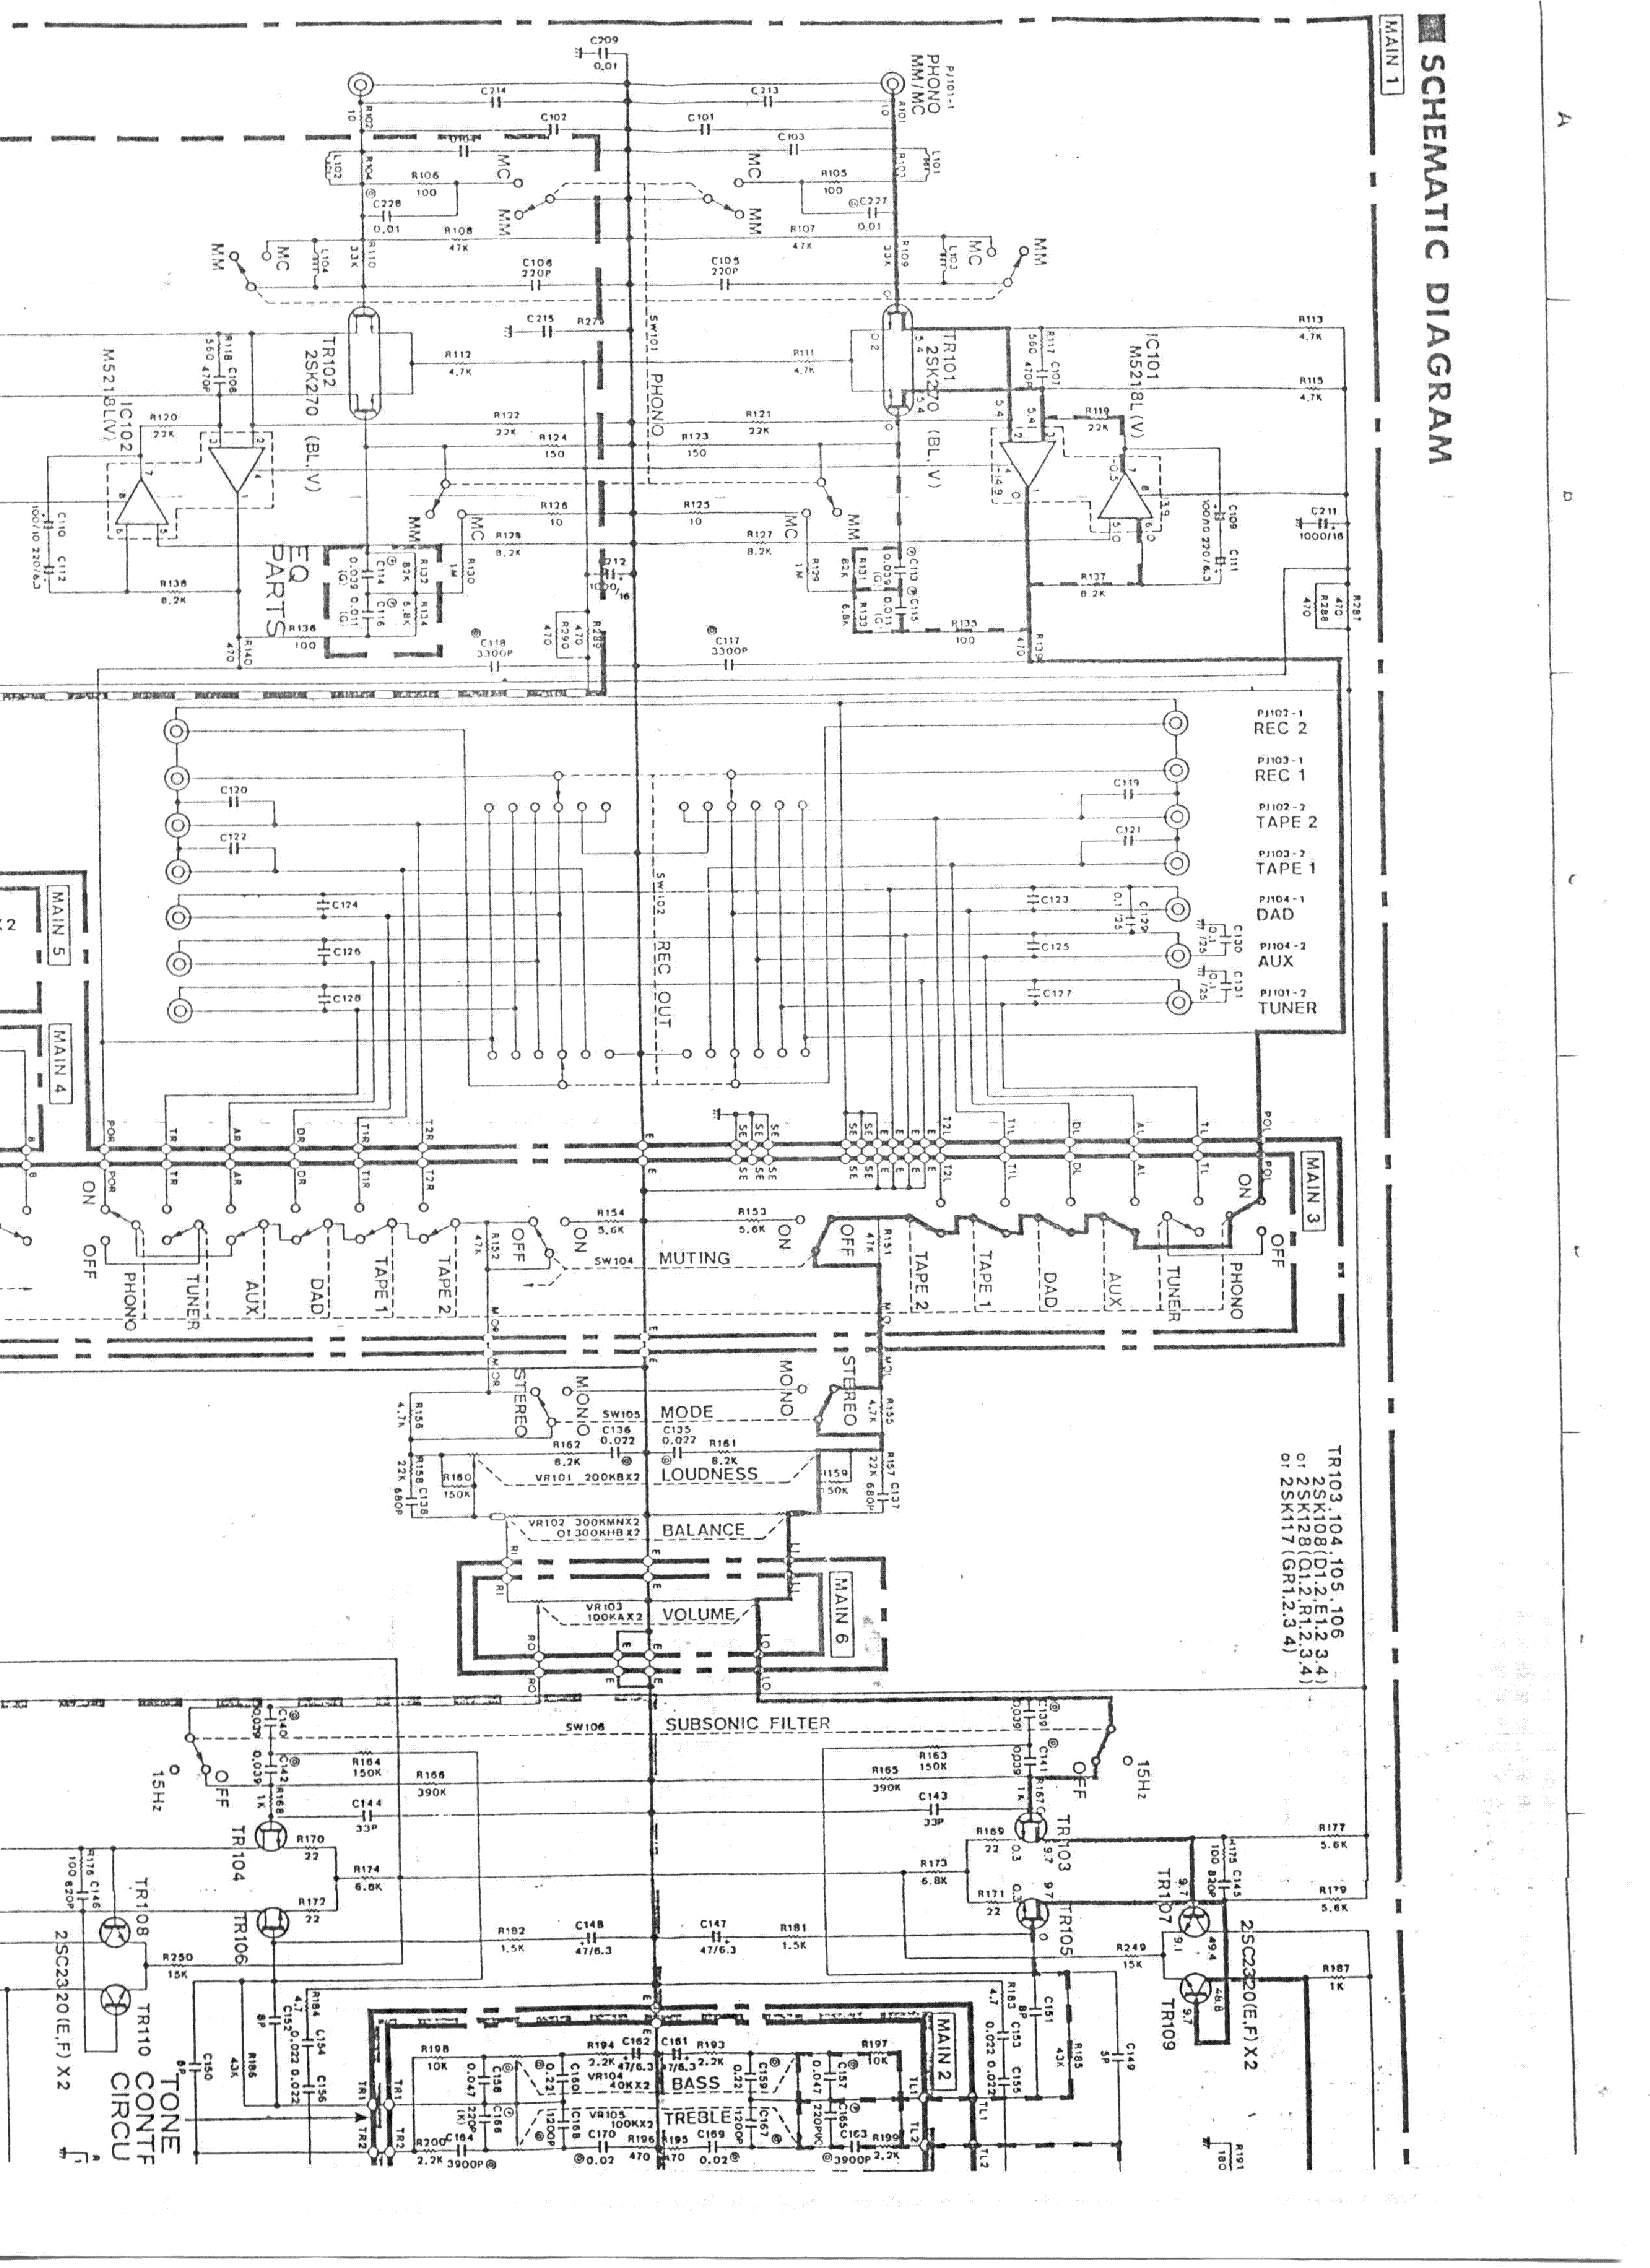 YAMAHA A-500 Service Manual download, schematics, eeprom